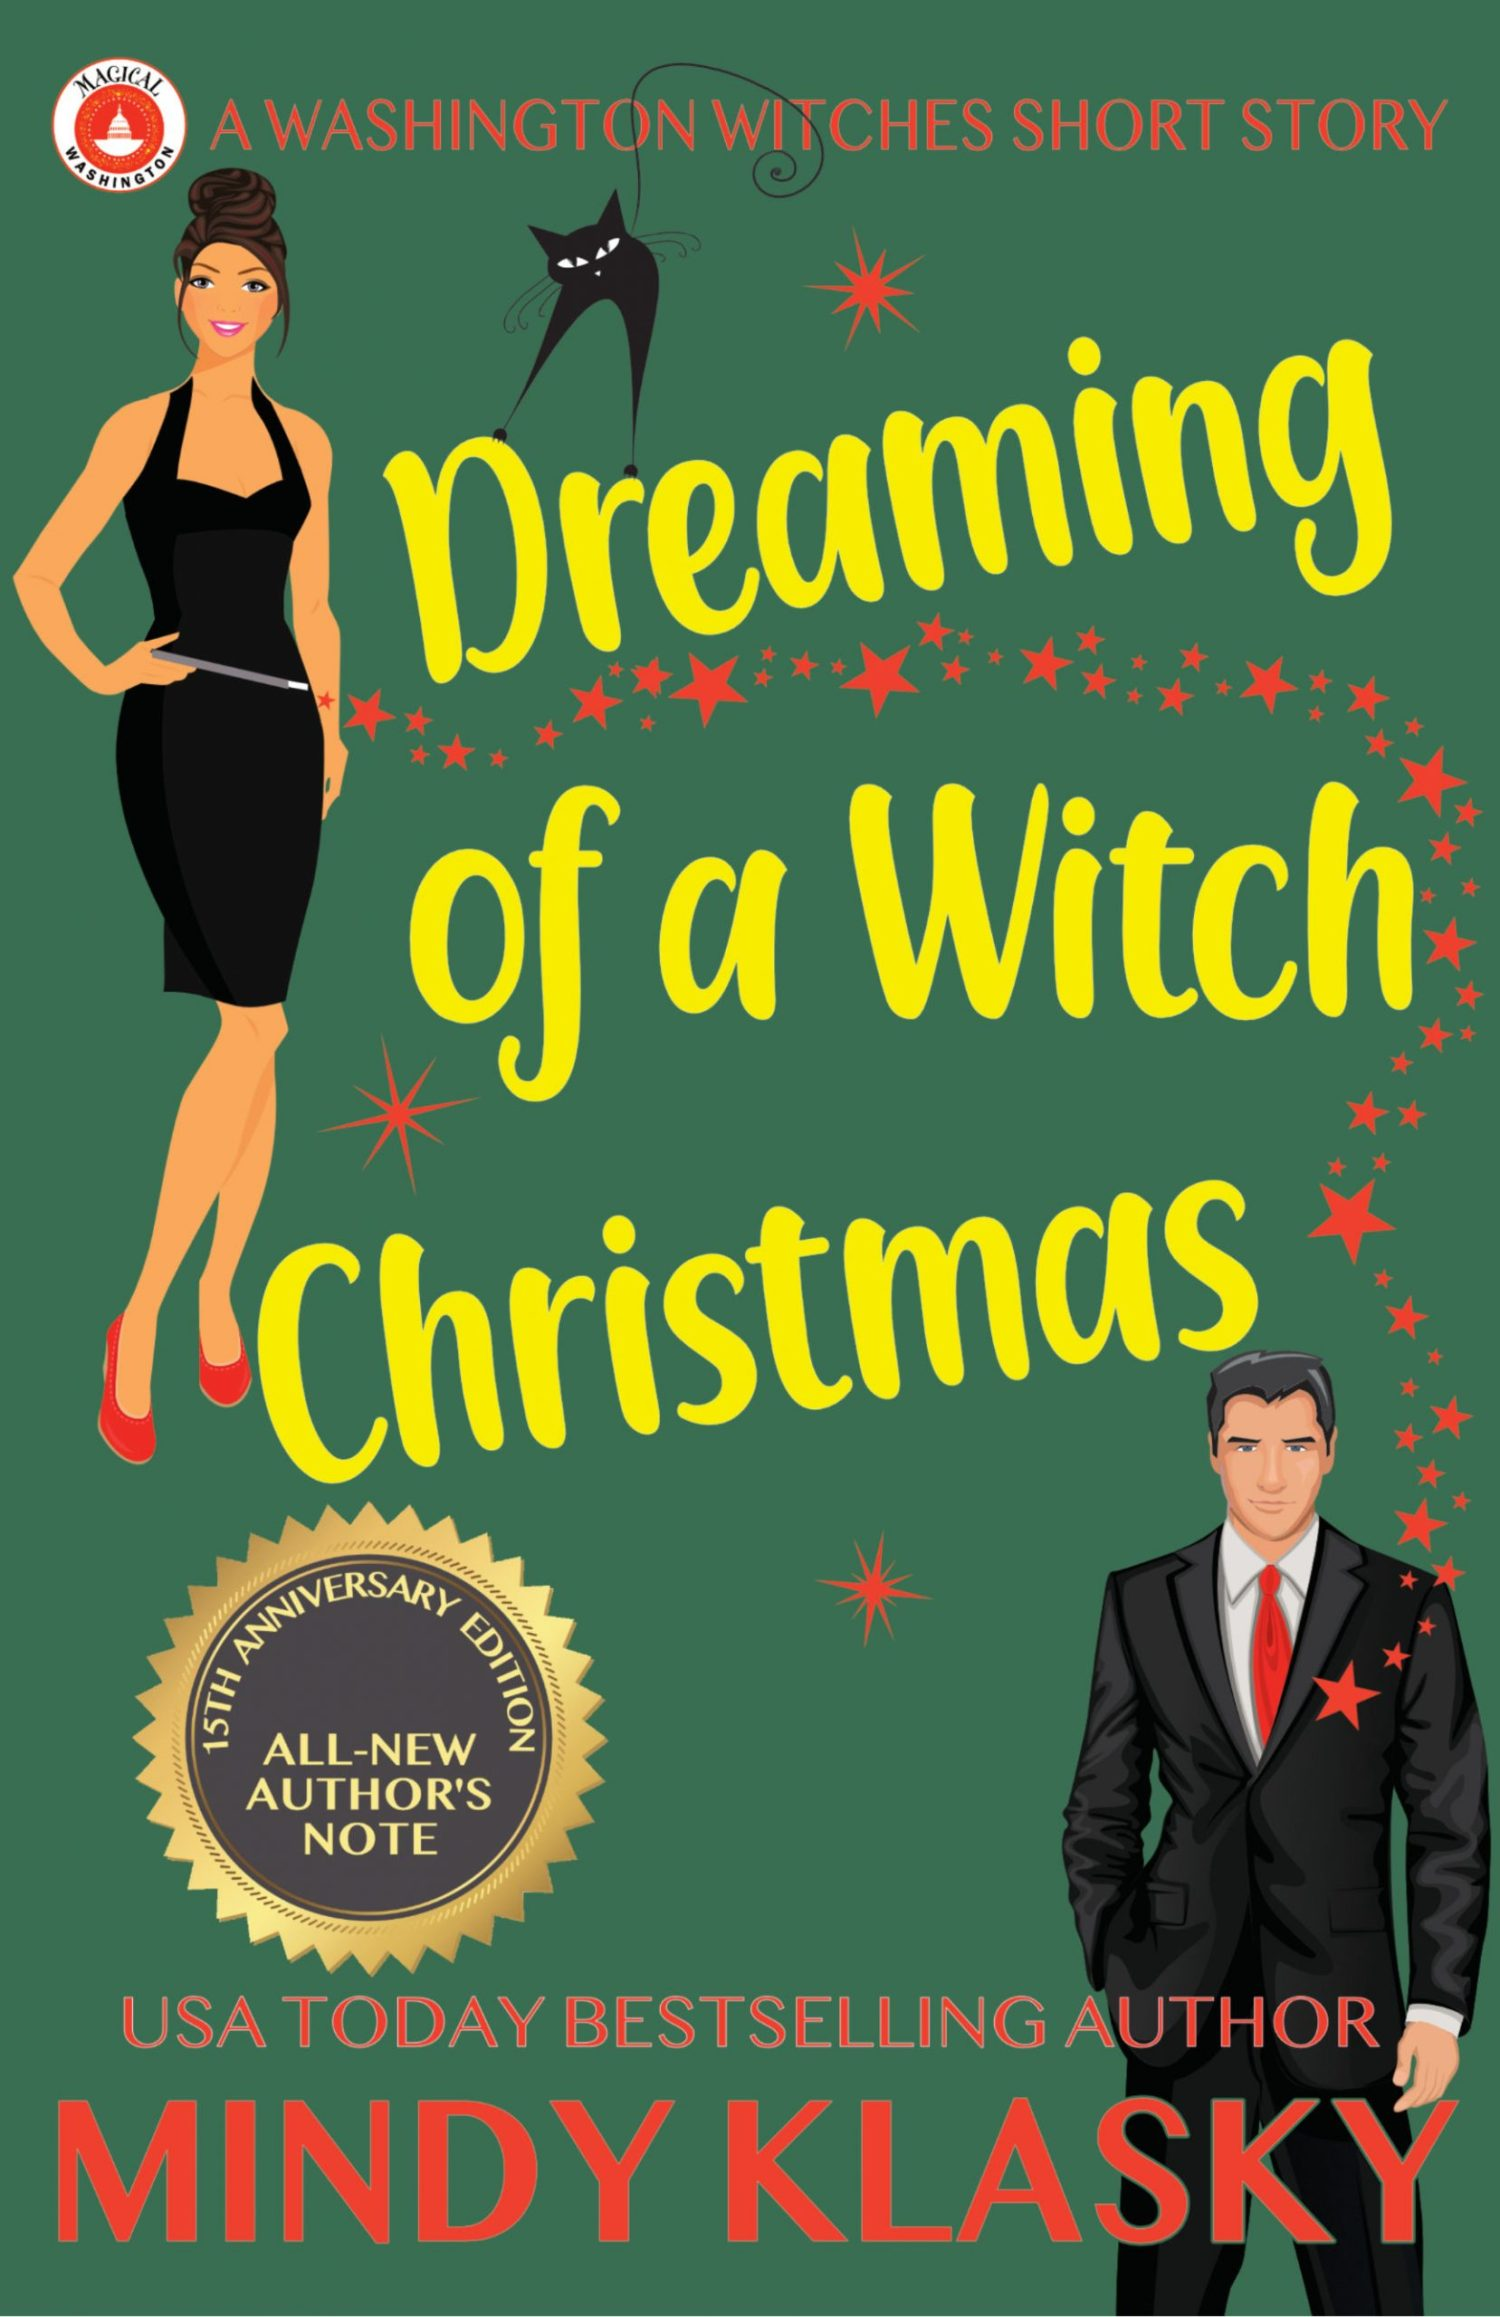 Dreaming of a Witch Christmas by Mindy Klasky